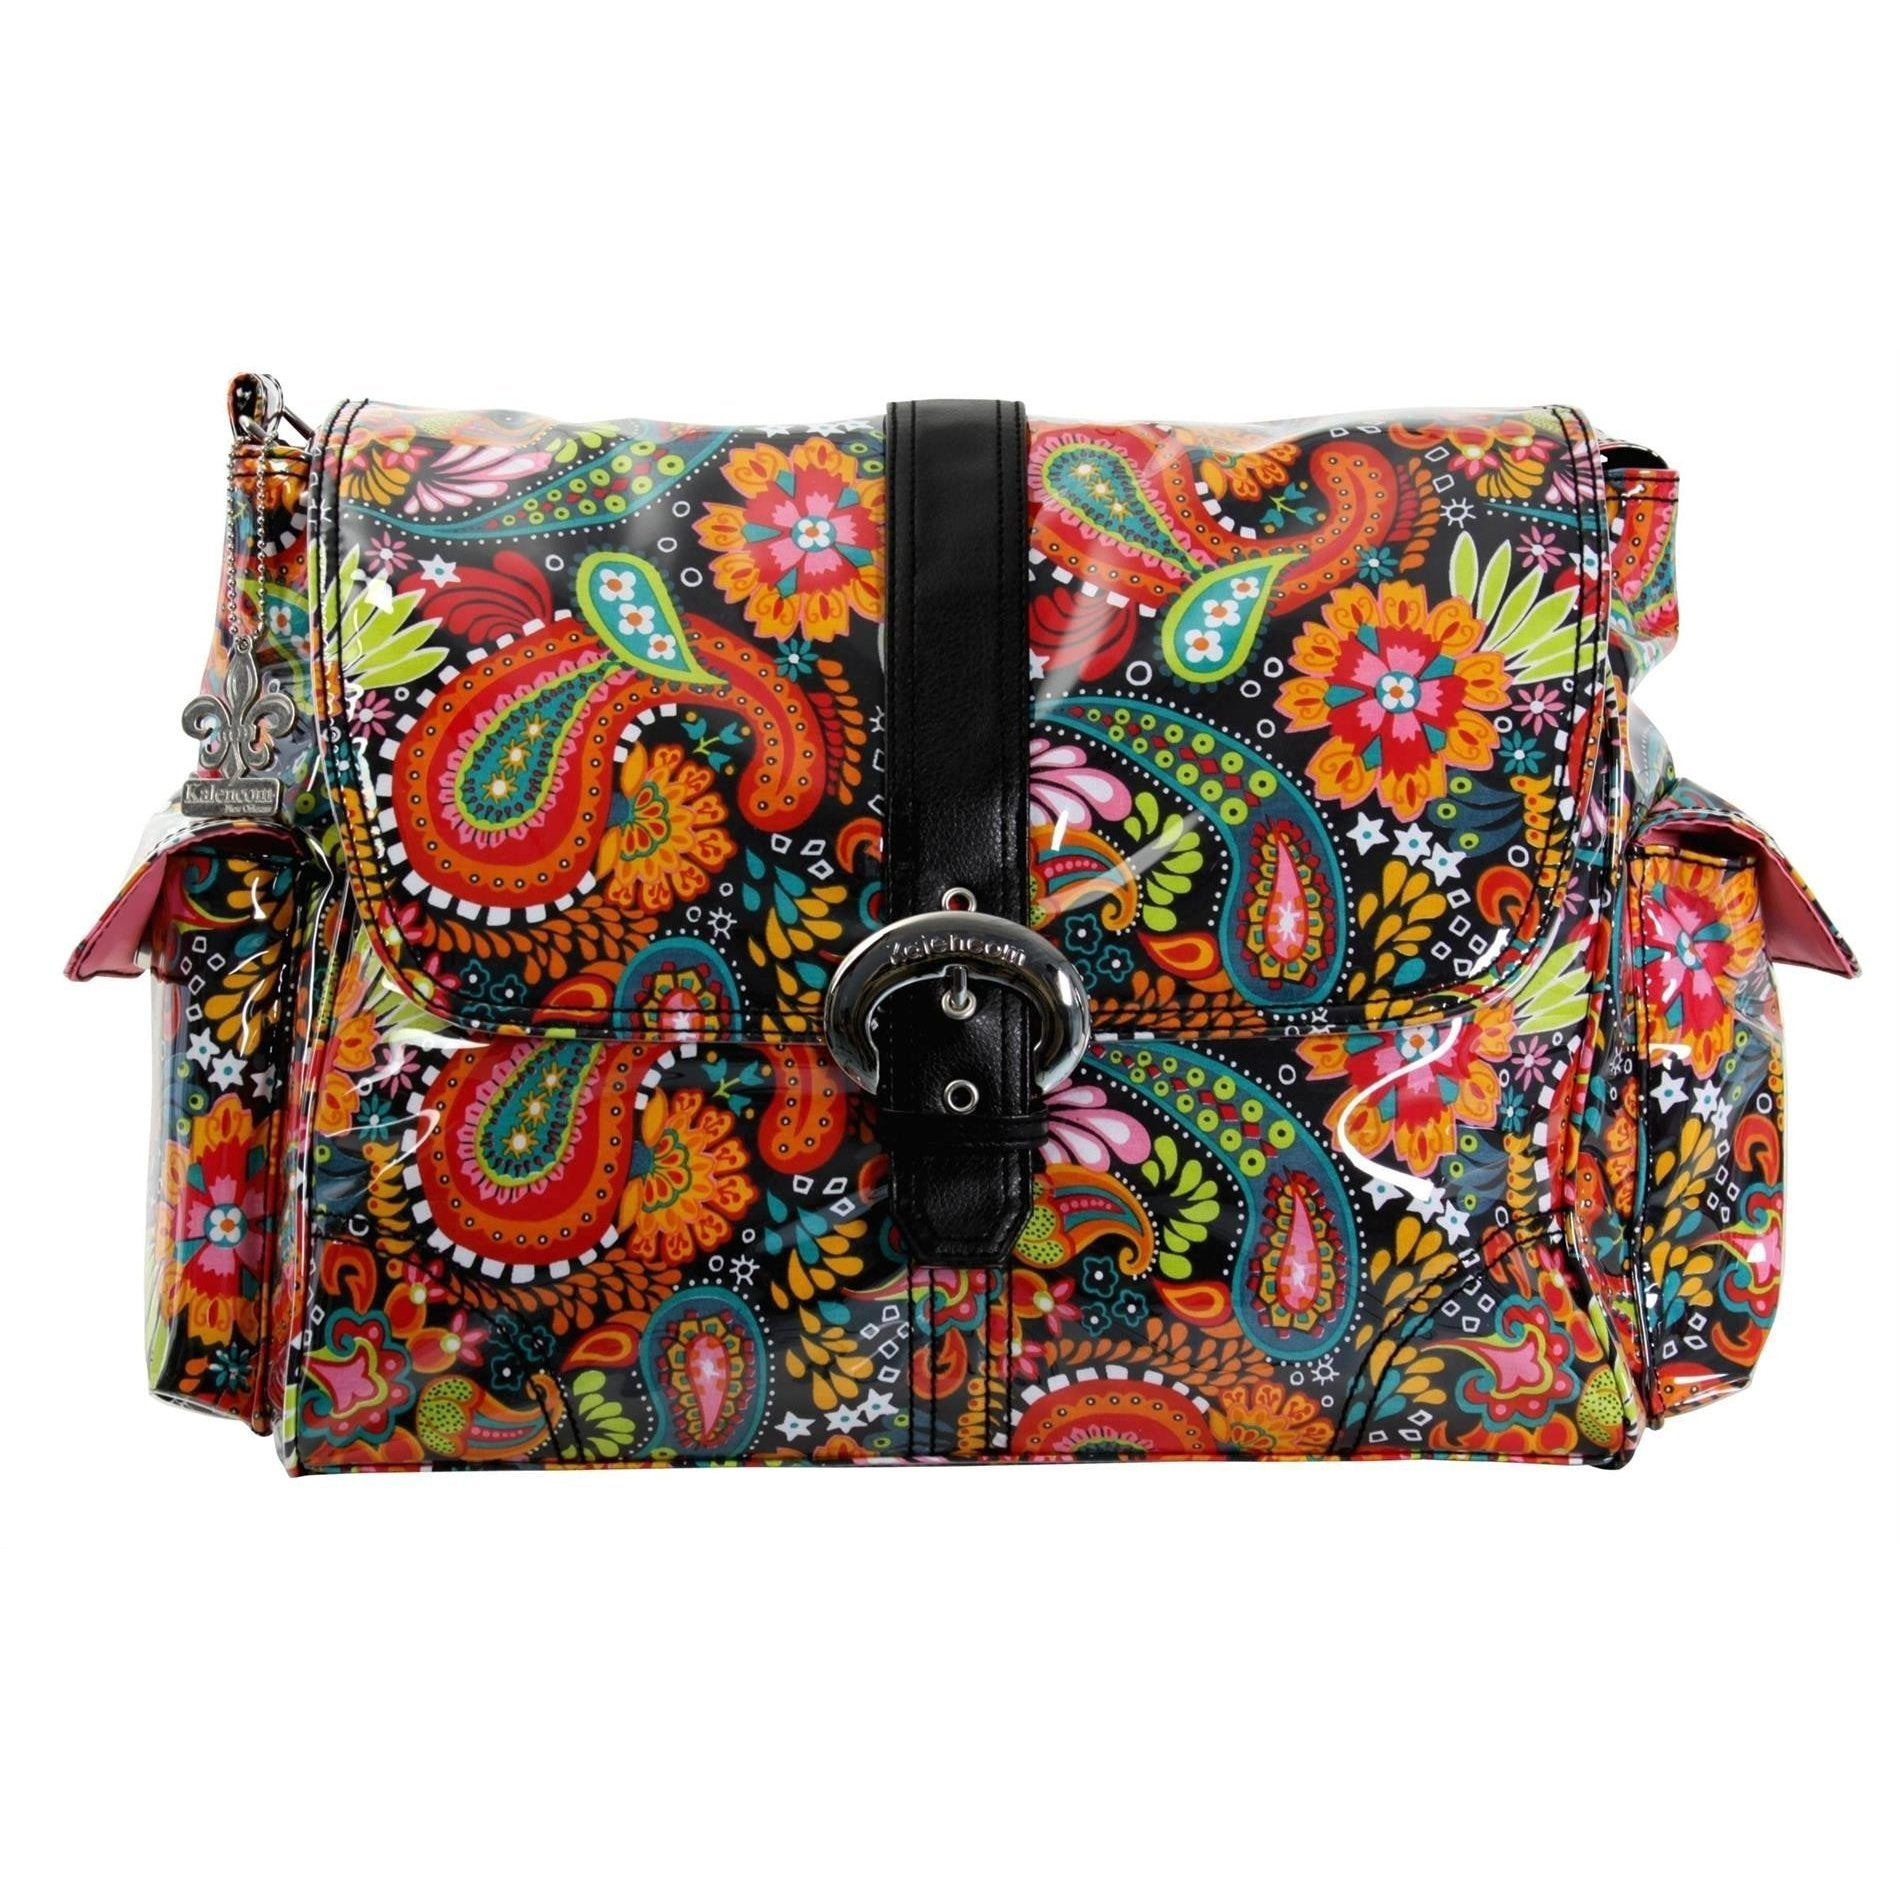 Mango Paisley Laminated Buckle Diaper Bag | Style 2960 - Kalencom-Diaper Bags-Default-Jack and Jill Boutique